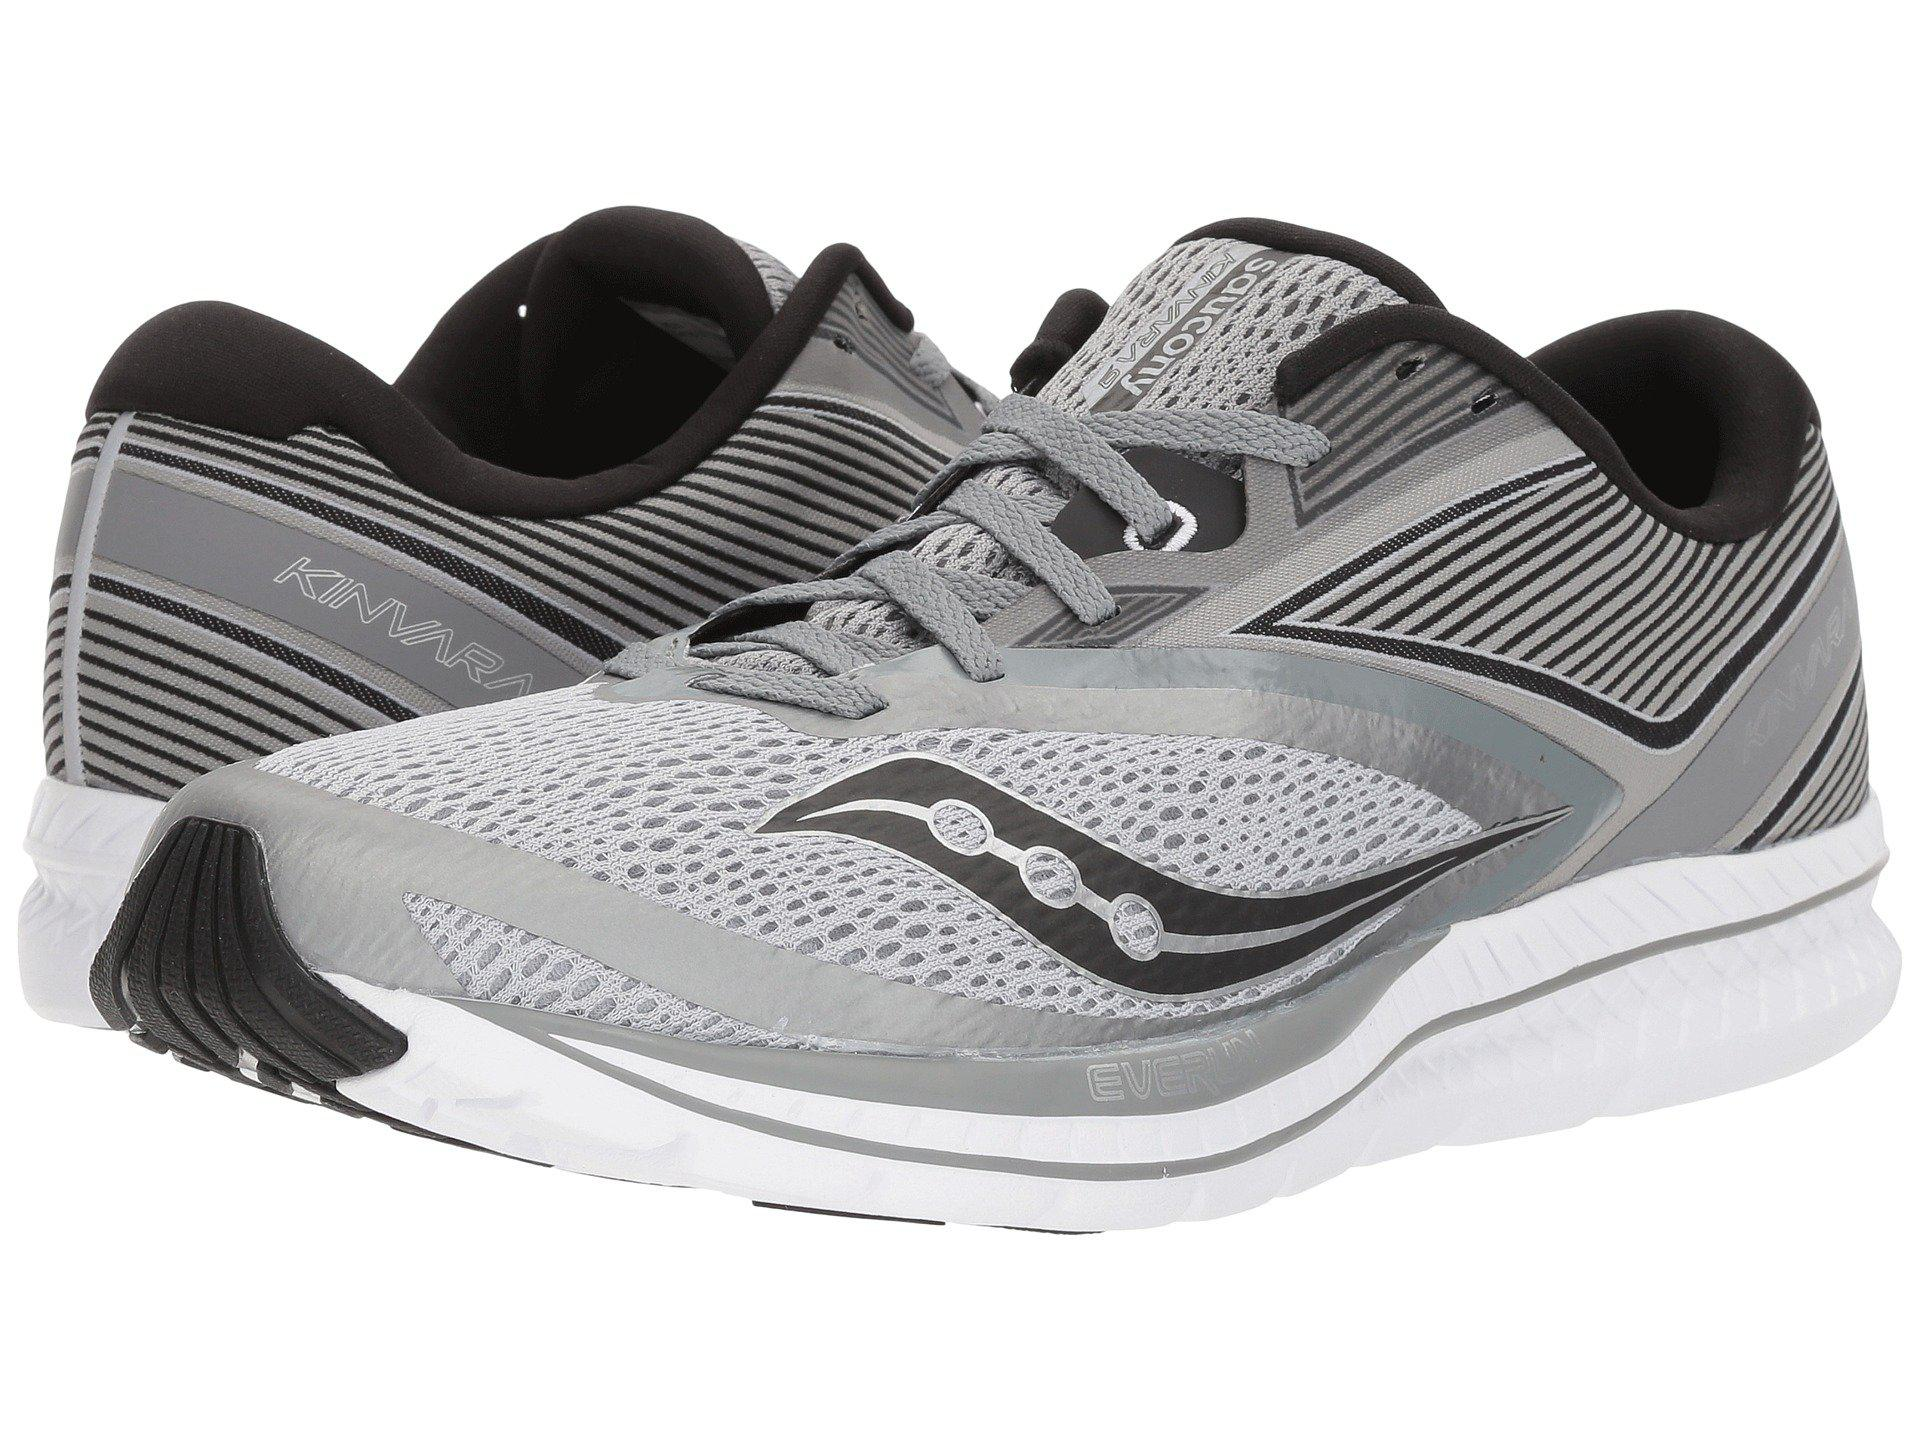 3c7c0a45ae Details about Saucony Men's Kinvara 9 Running Shoe, Grey/Black, 9.5 D(M) US